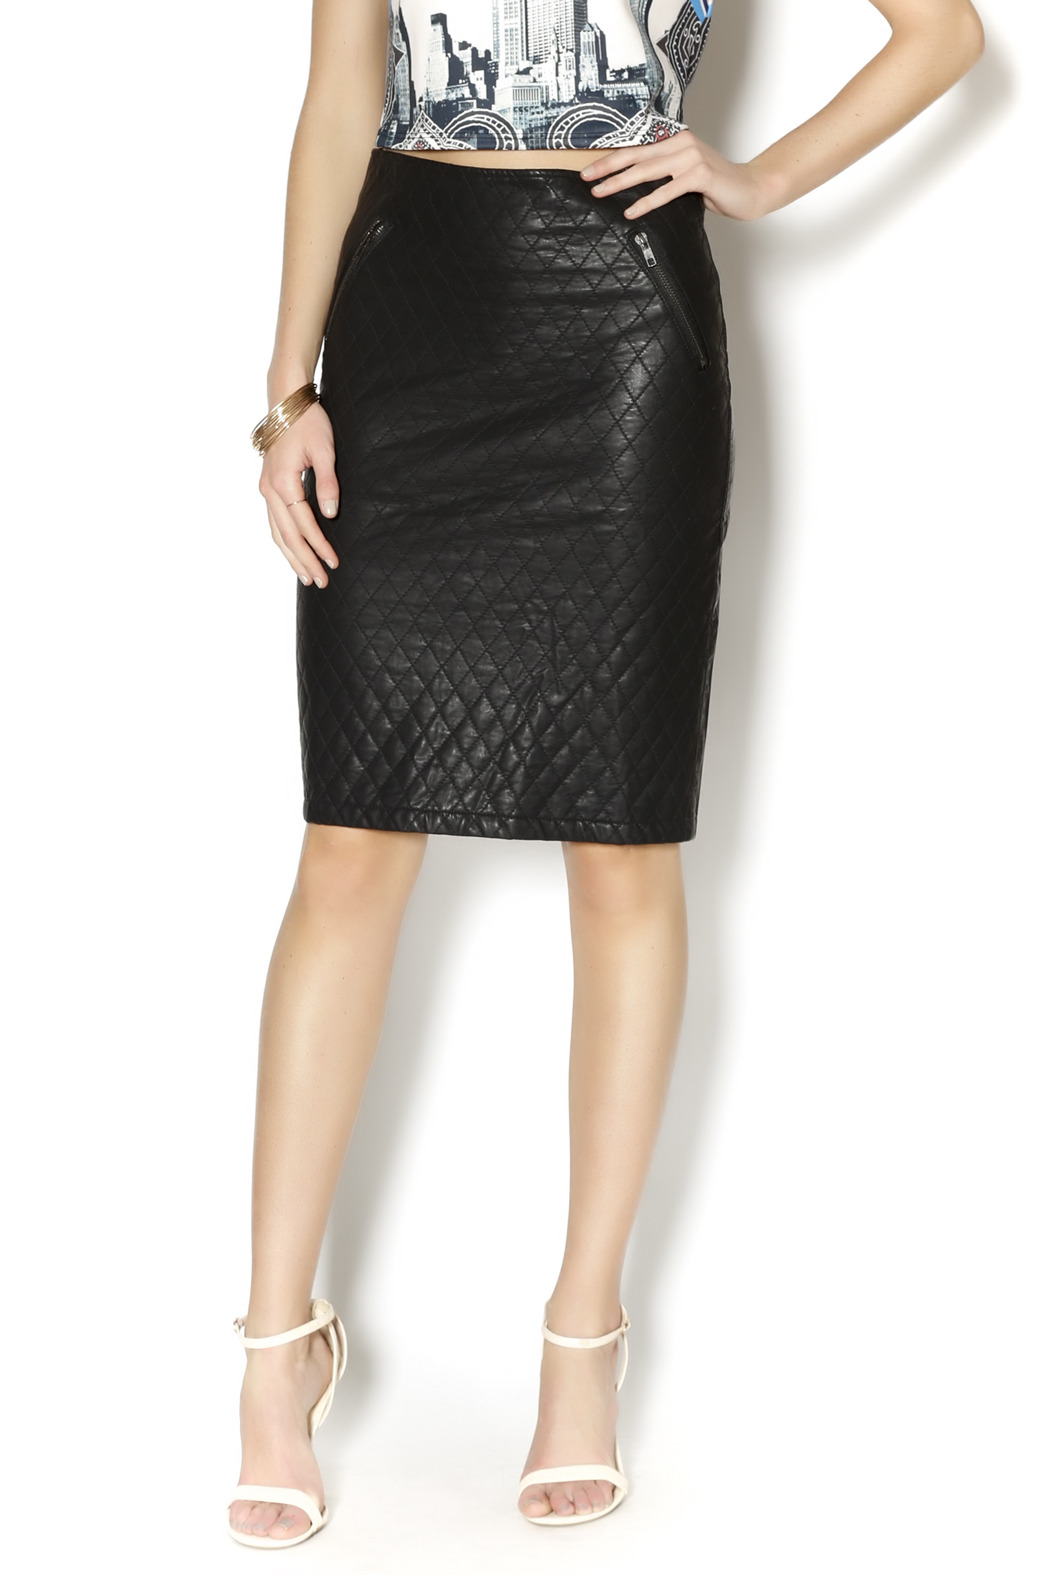 gracia quilted leather skirt from by galys